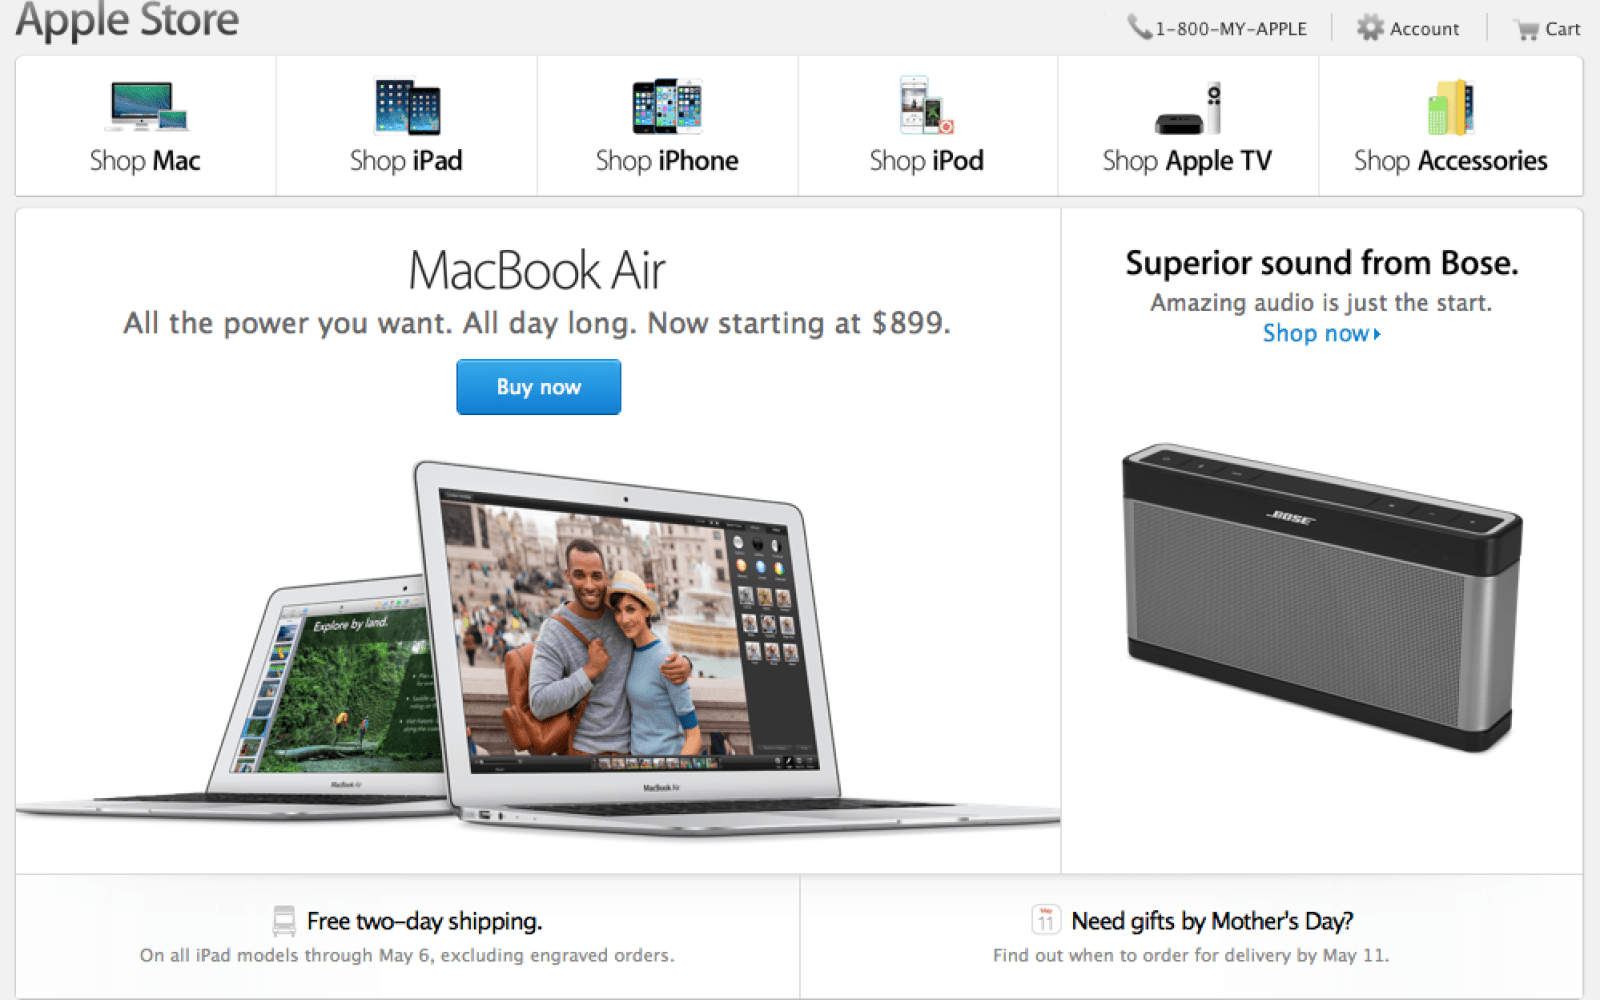 Apple passes Staples to become the #2 online retailer behind Amazon